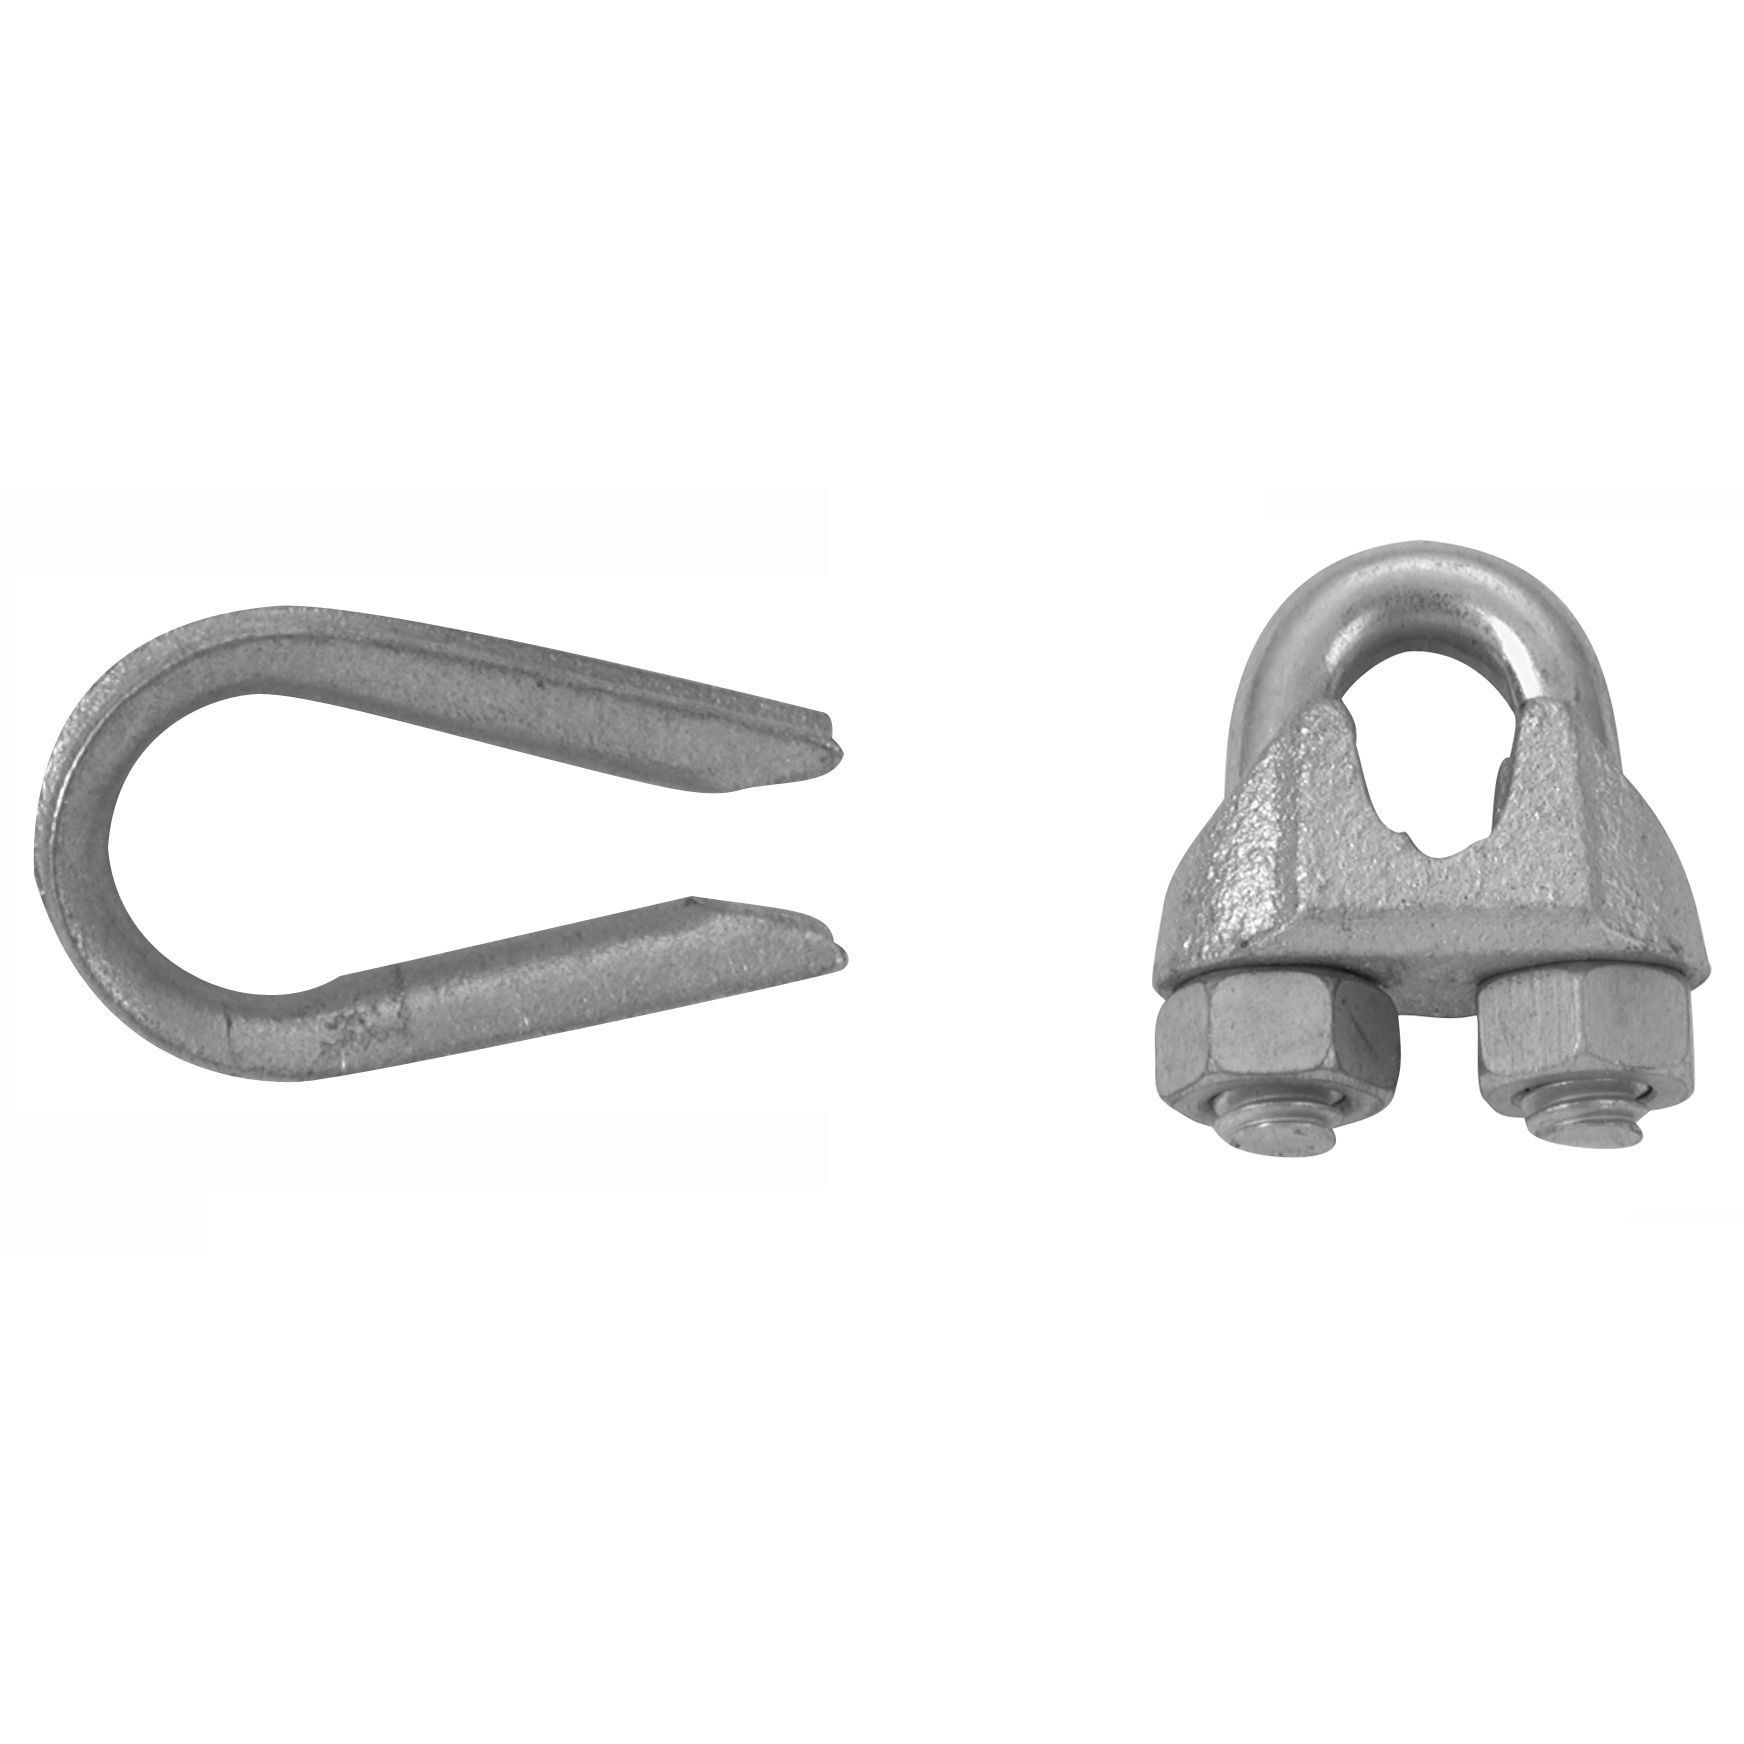 Campbell B7675129 1/4 Wire Rope Clips and Thimble 3-pc Set (Hardware ...